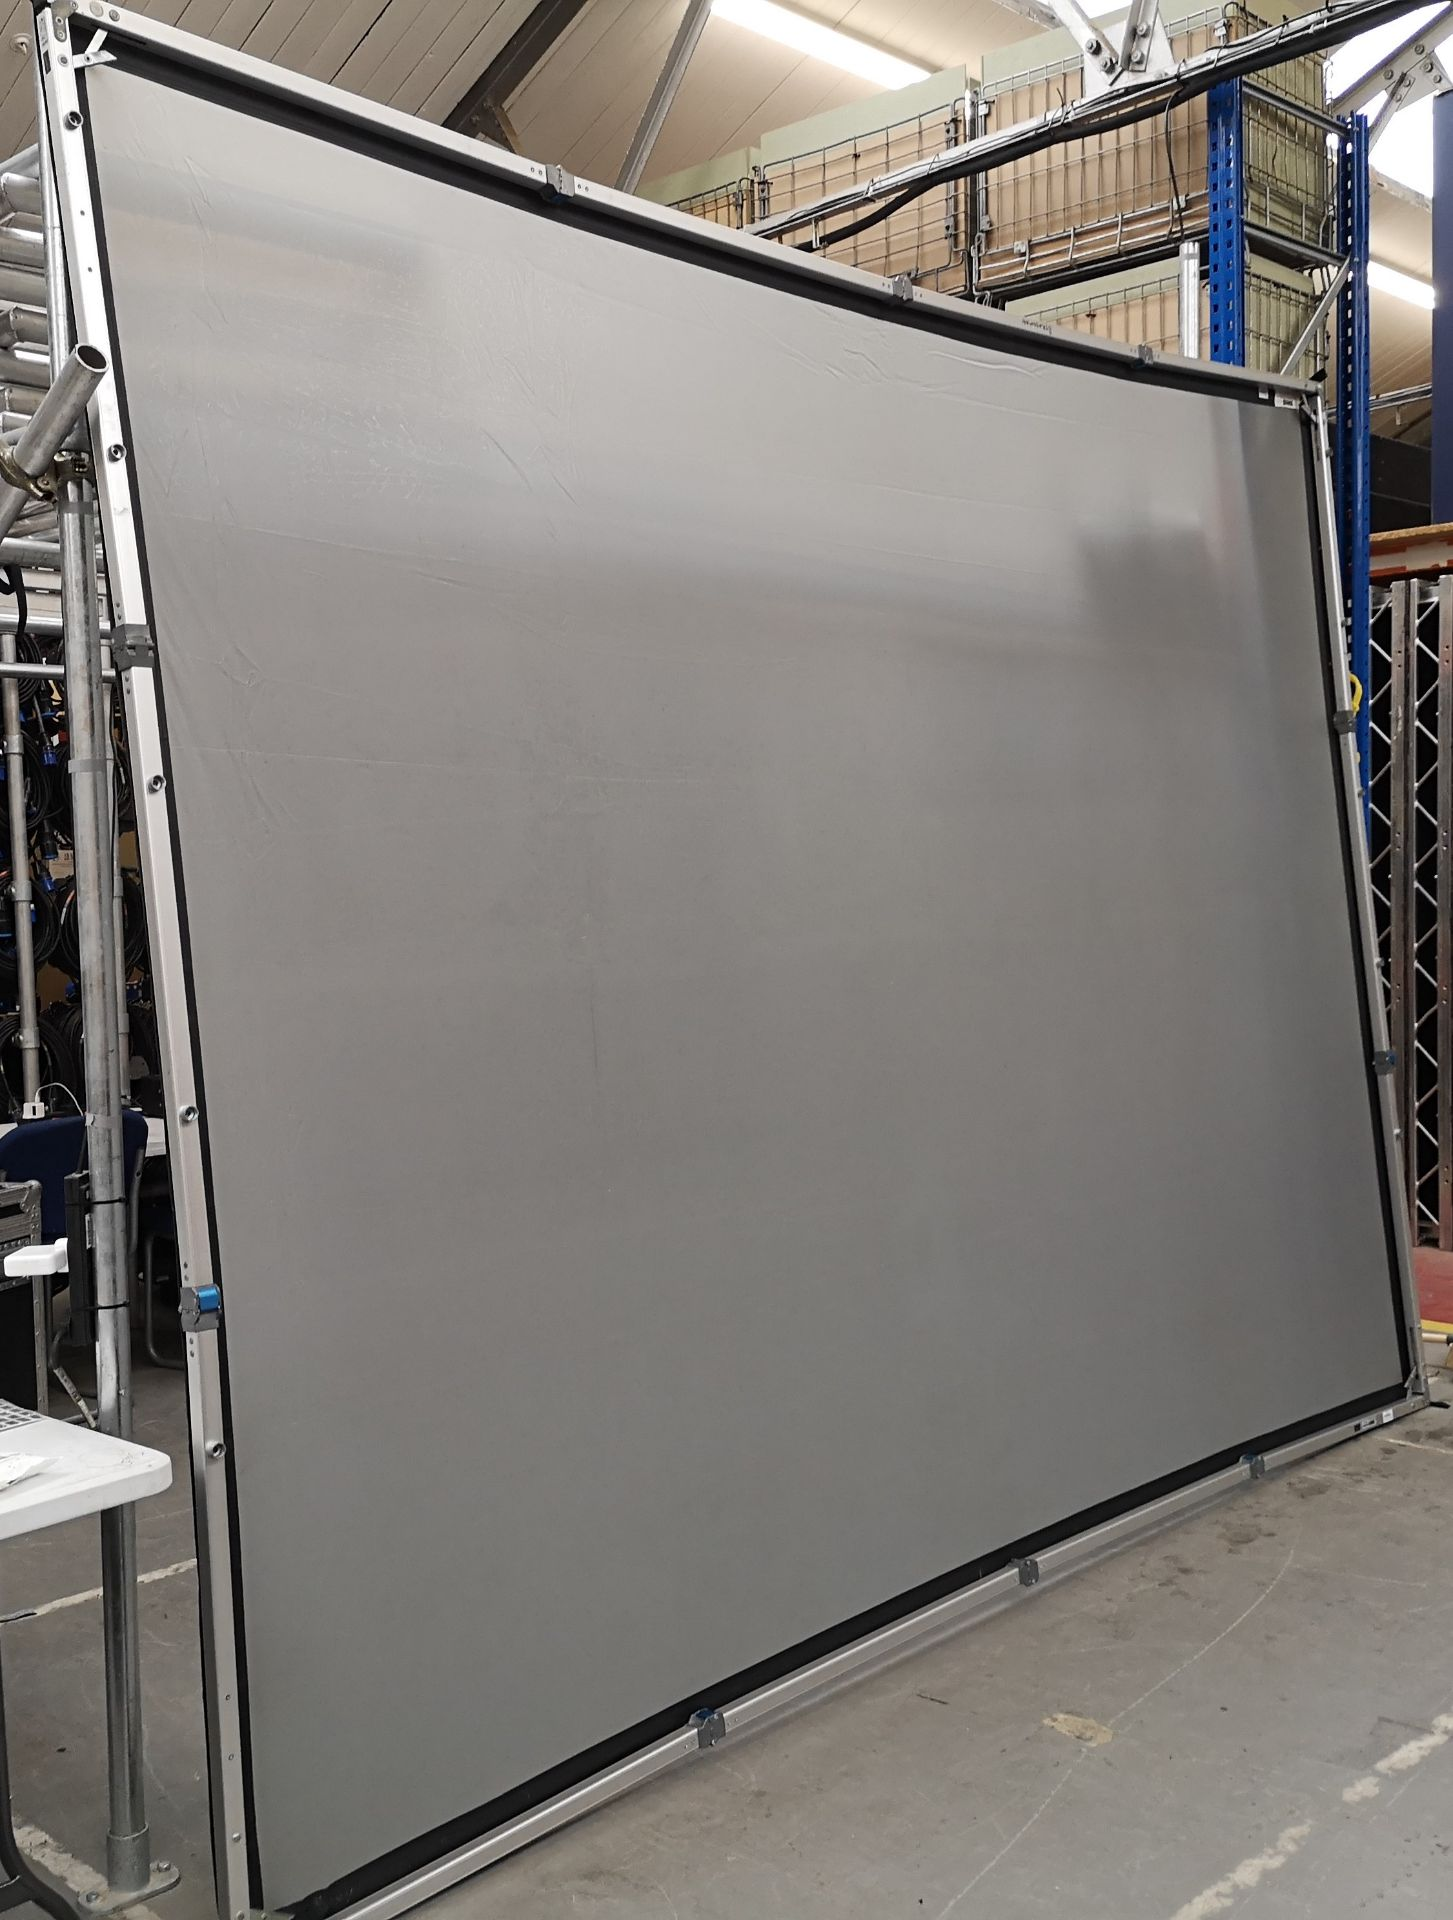 A DA-LITE 12ft x 9ft Rear Projection Fastfold Screen with frame, legs, bolts, screen surface, bag - Image 3 of 10